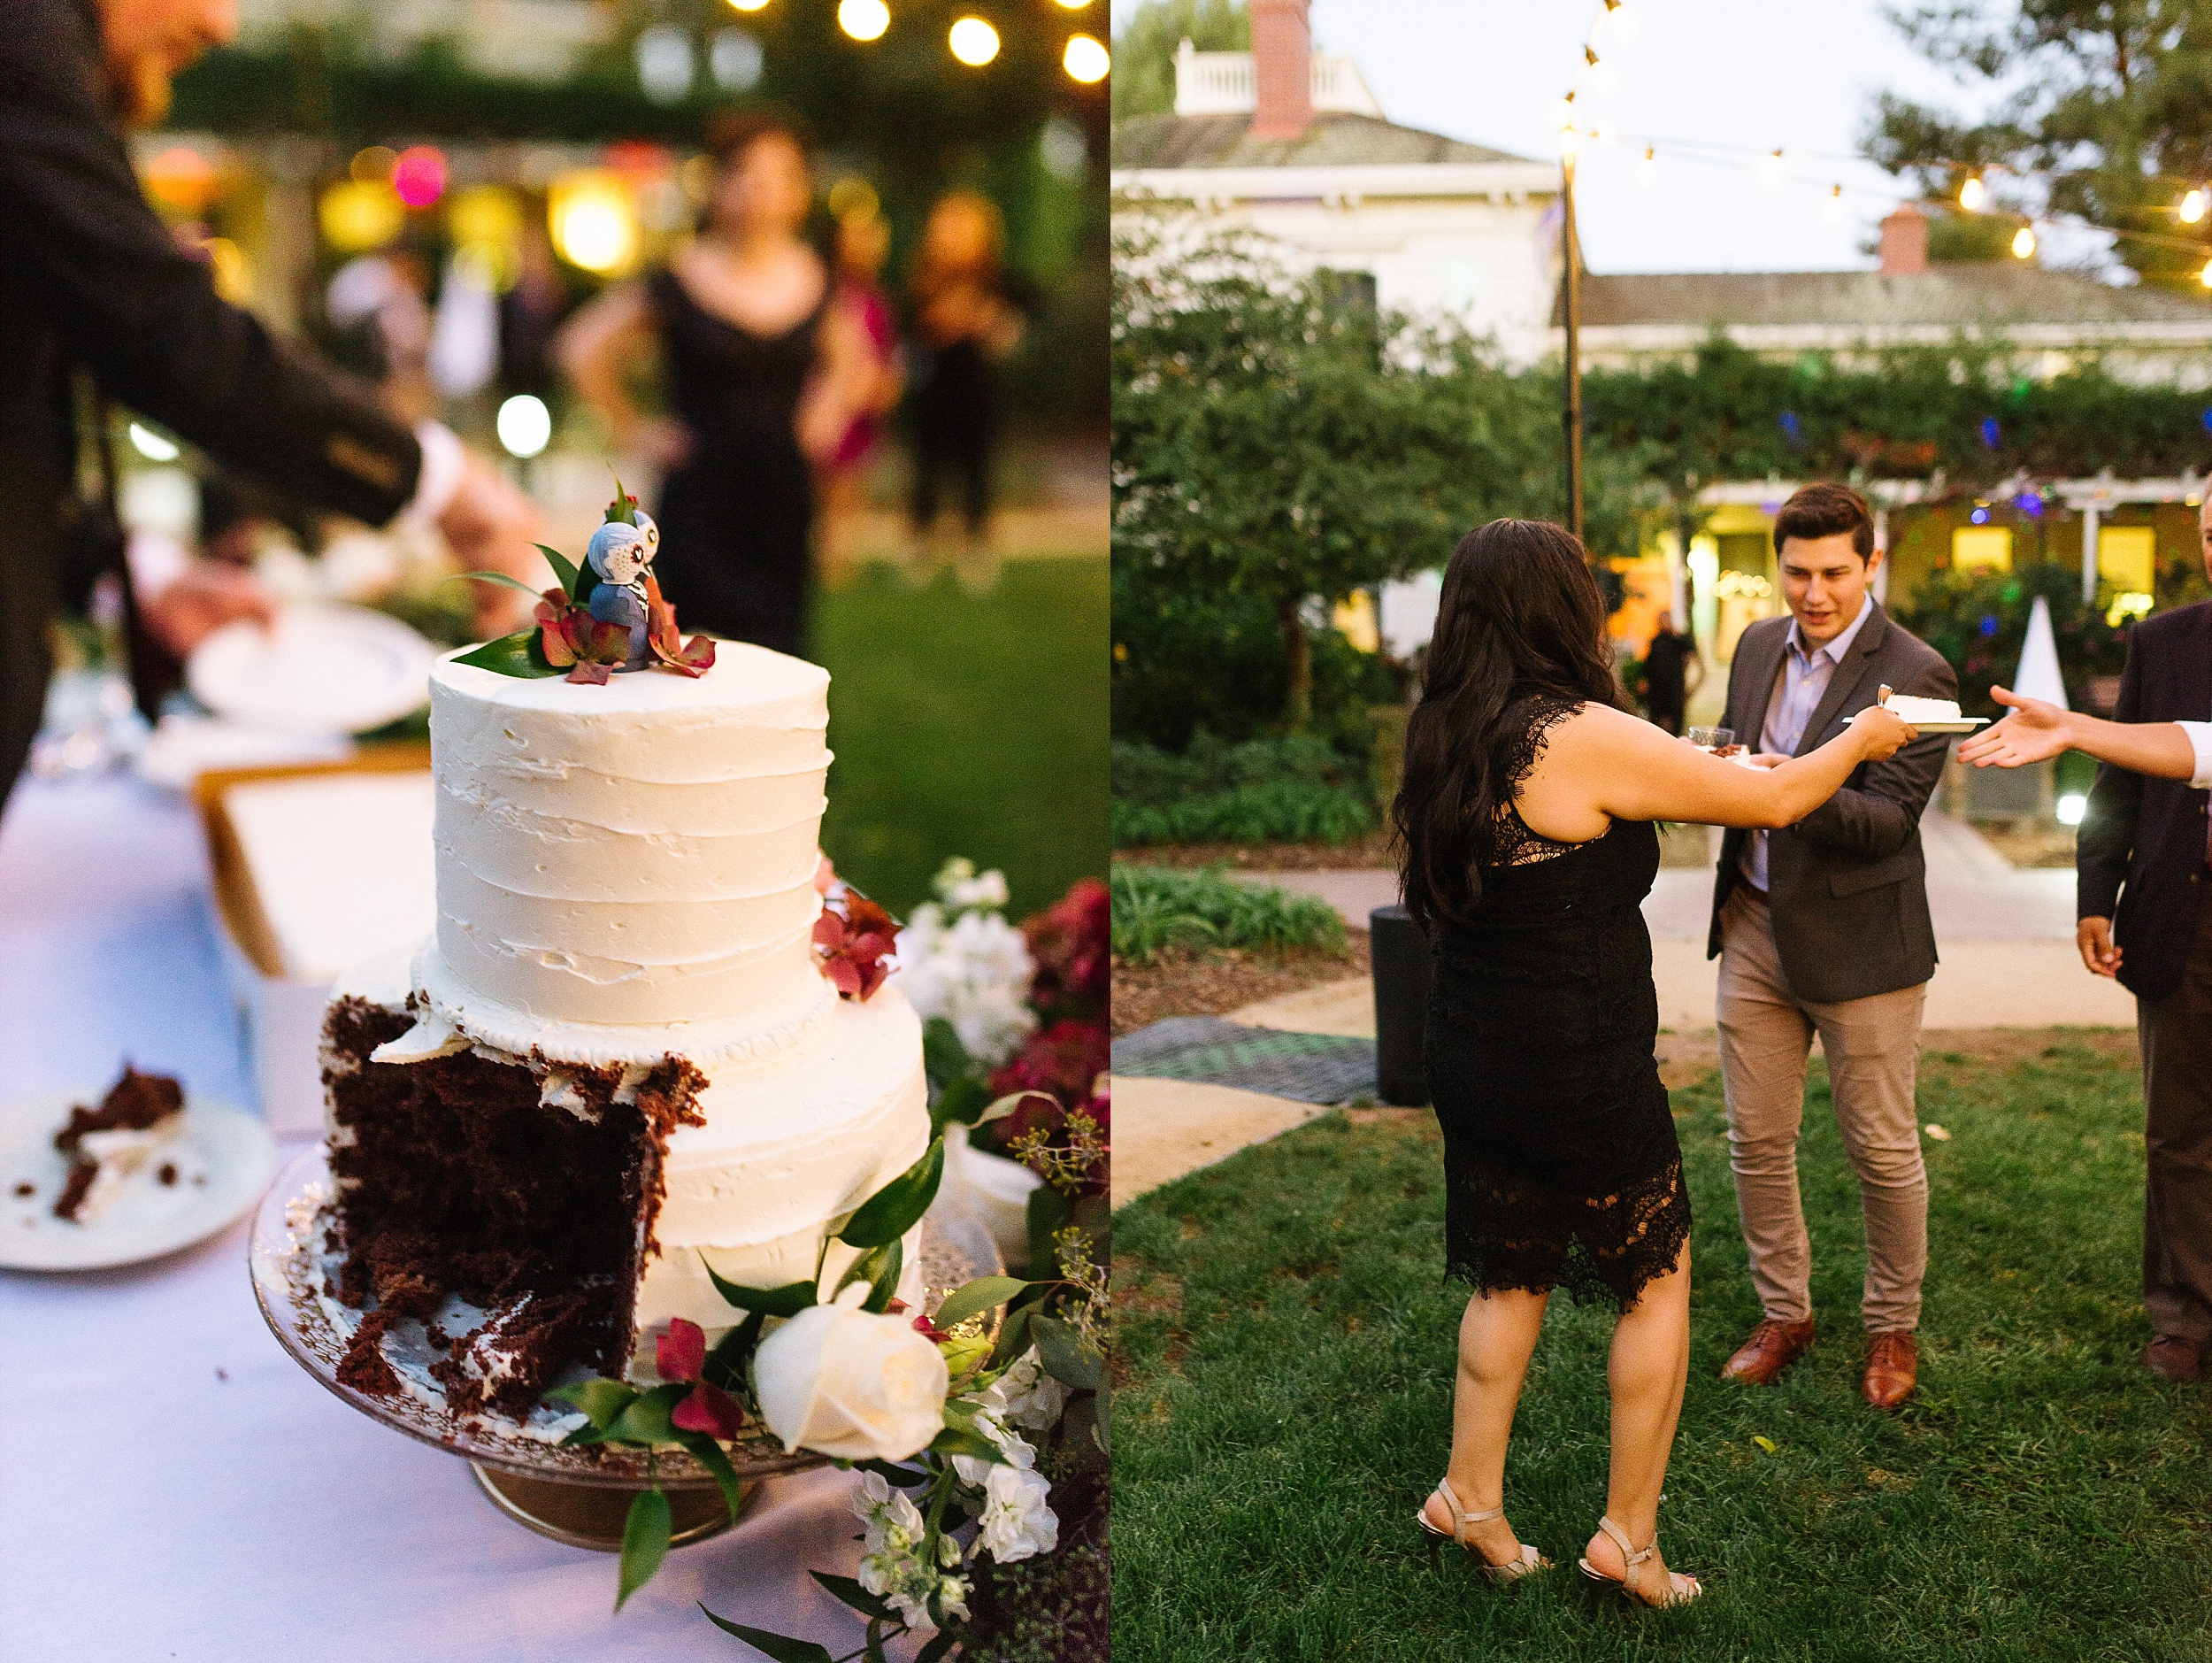 enissablake_Rengstorff_house_outdoor_wedding_cdp_0048.jpg